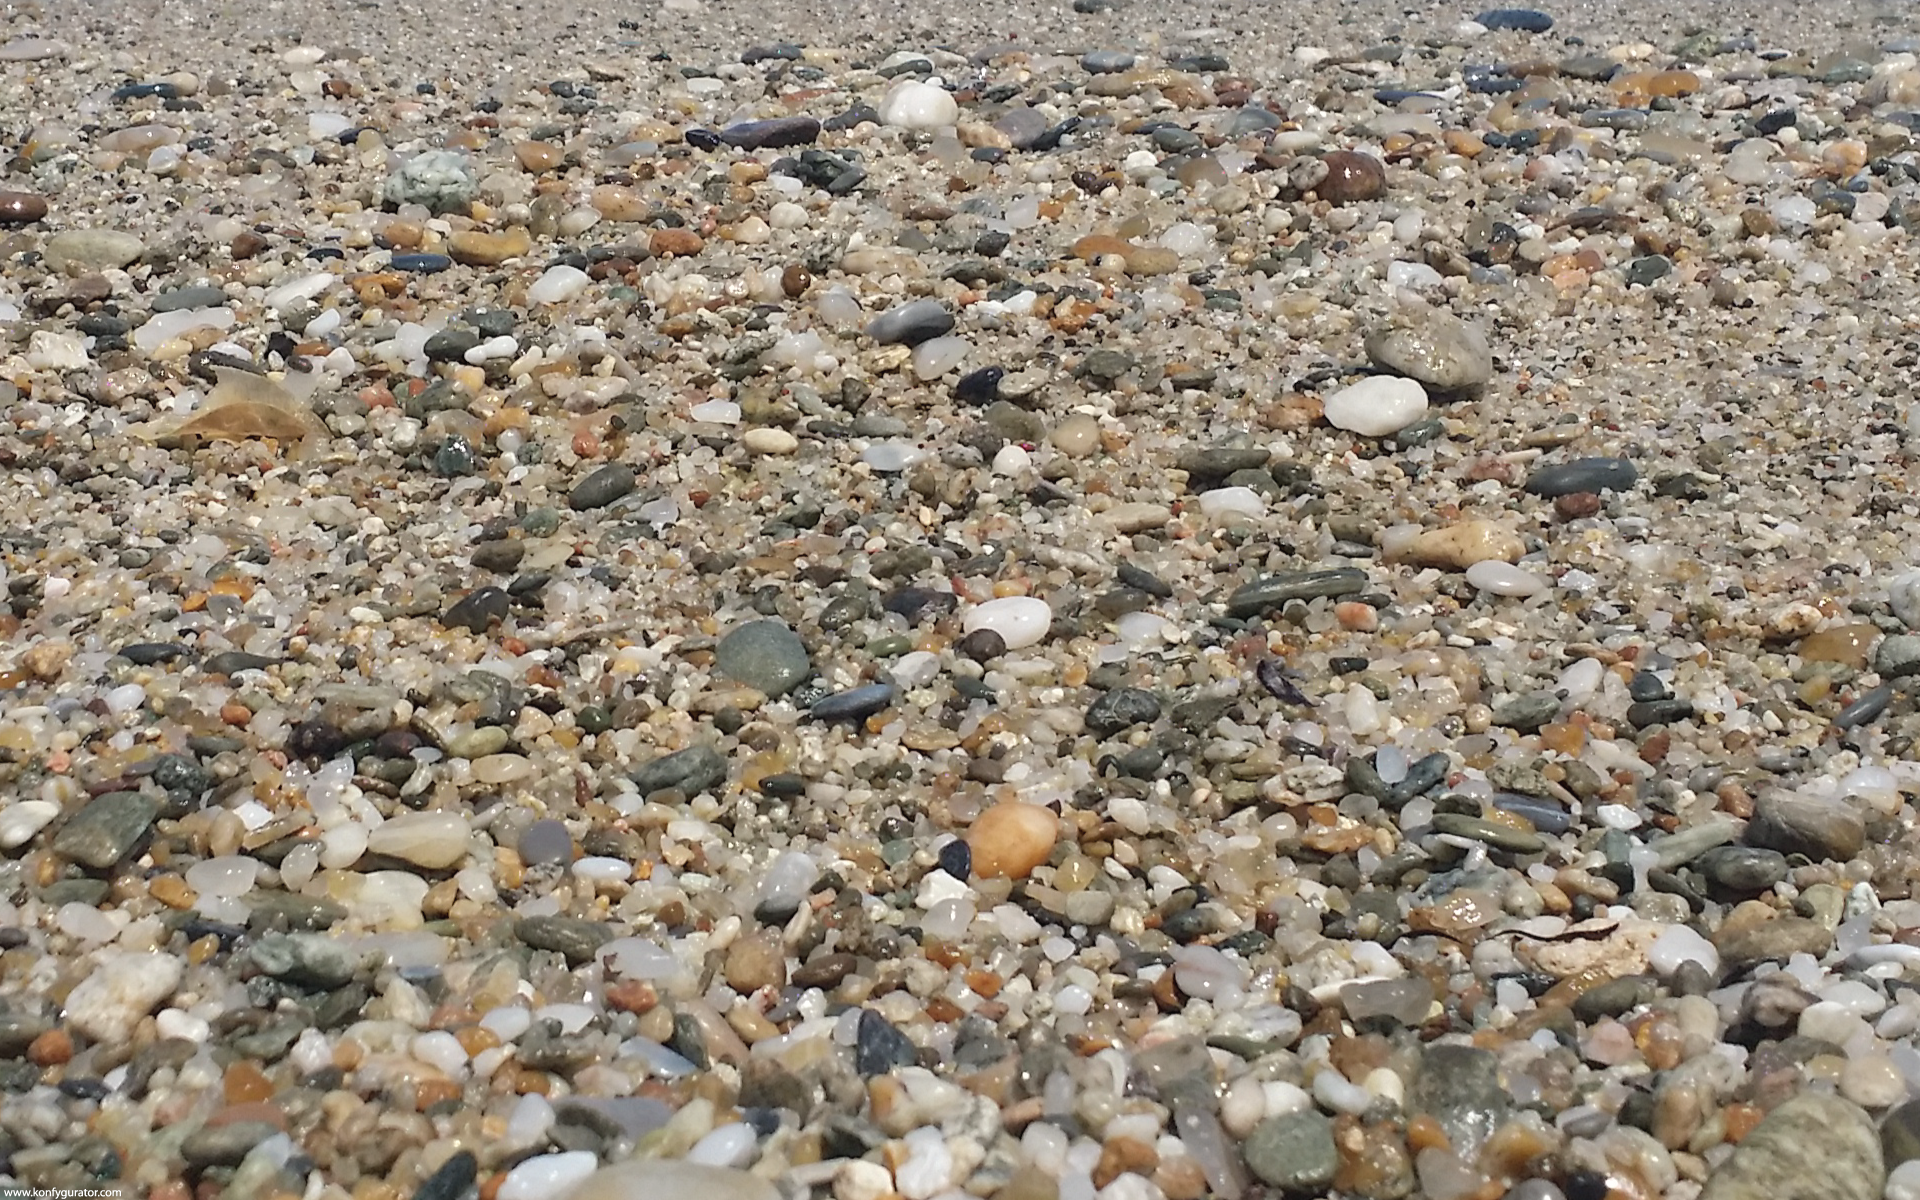 The sea pictures - beach, stones, daylight